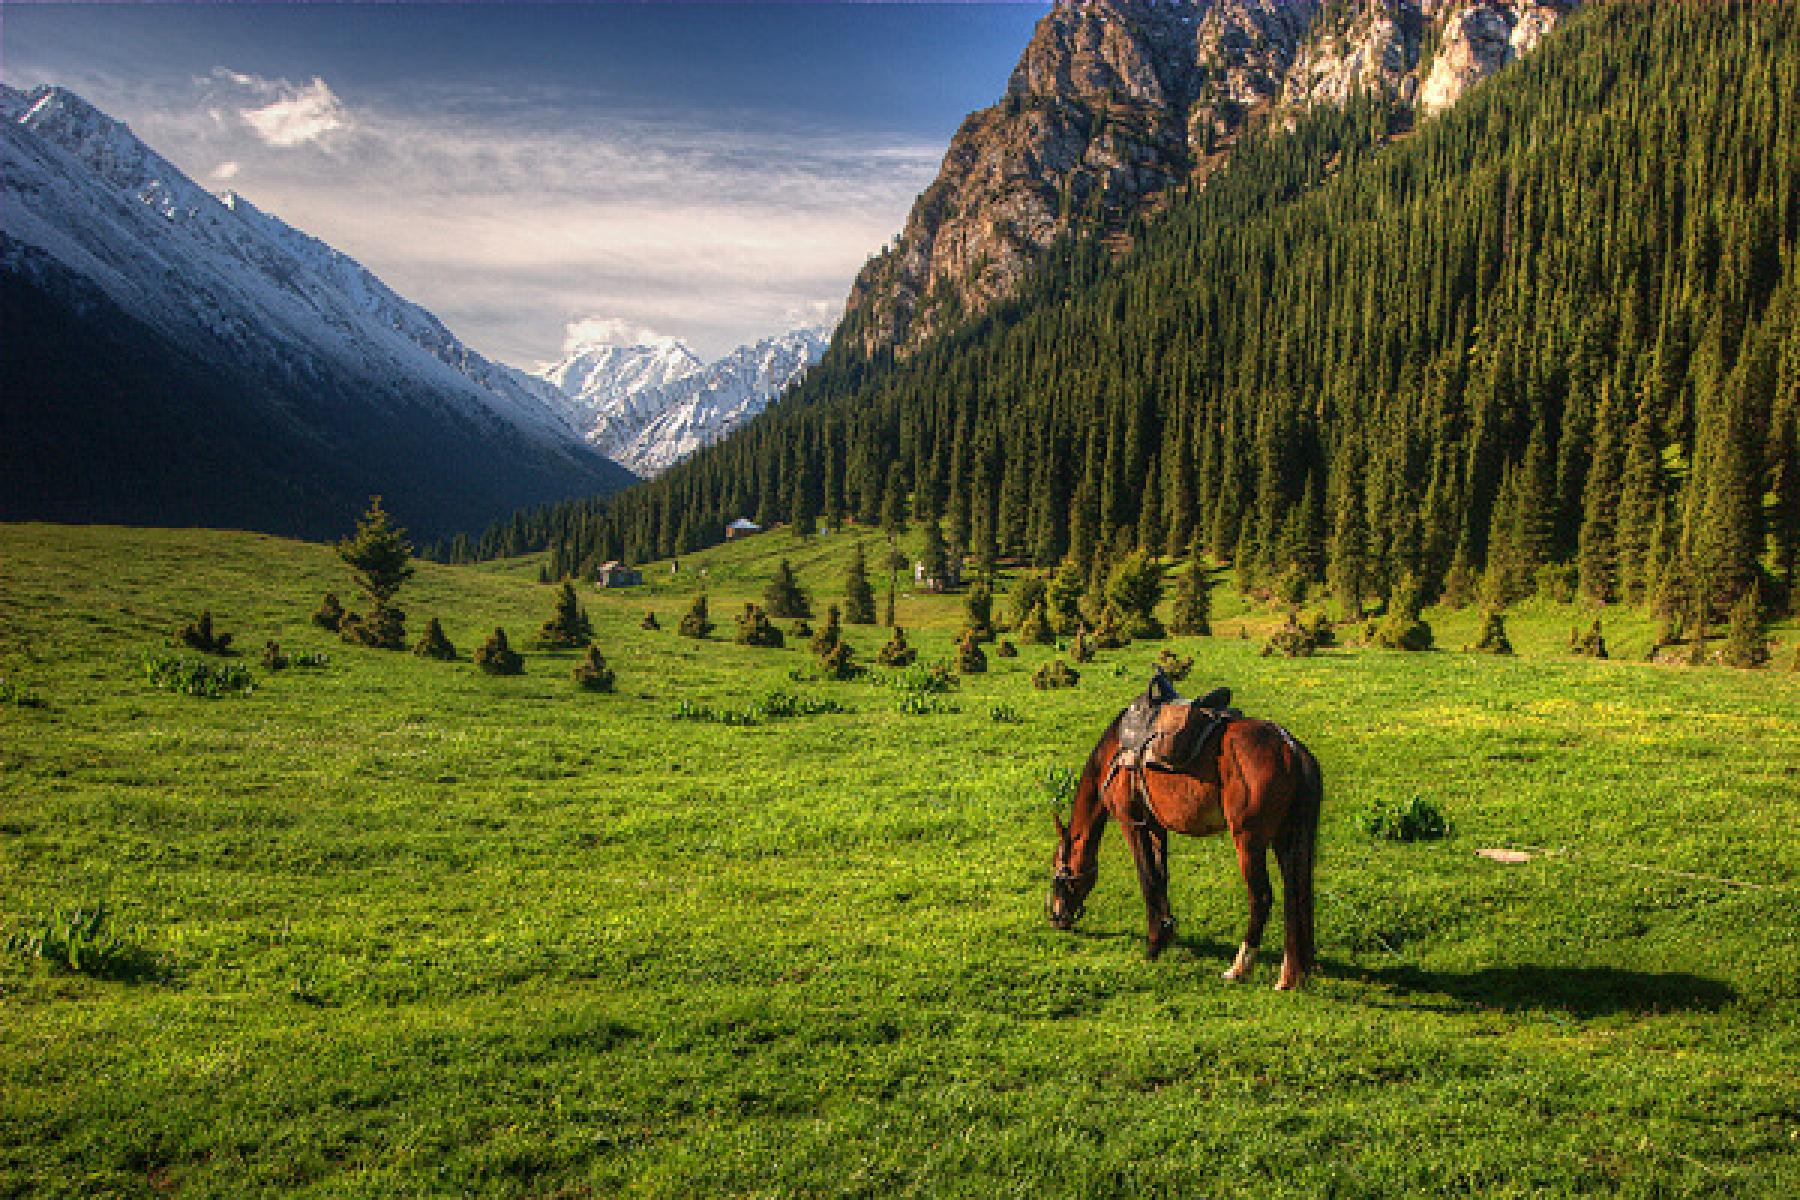 Let's experience the life of the silk roads nomads starting at Kyrgyzstan